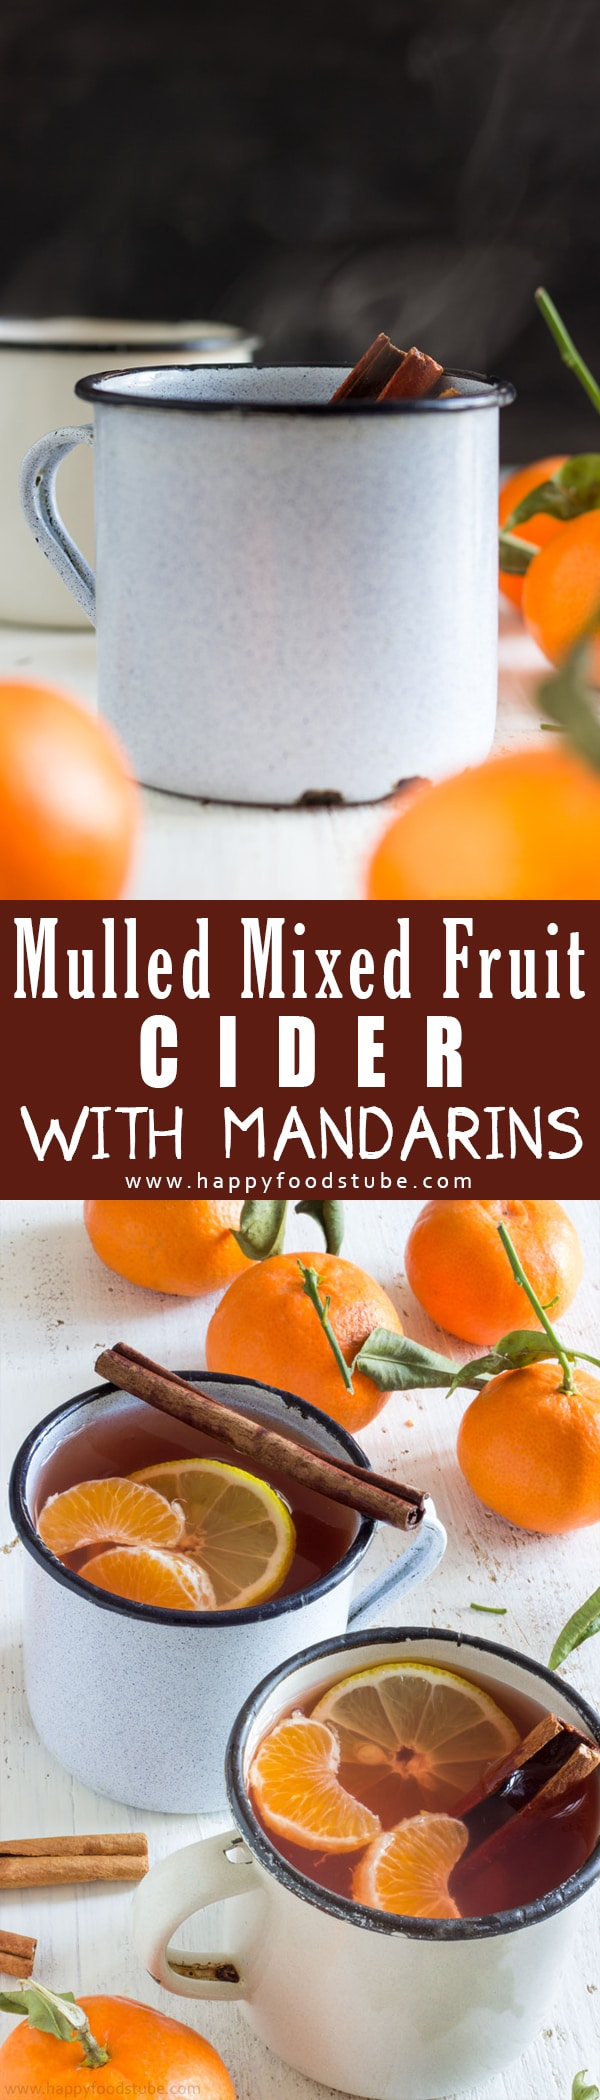 Indulge yourself in a cup of Mulled Mixed Fruit Cider with Mandarins. This warm drink made with mixed fruit cider and rum is perfect for cold days. Kopparberg cider